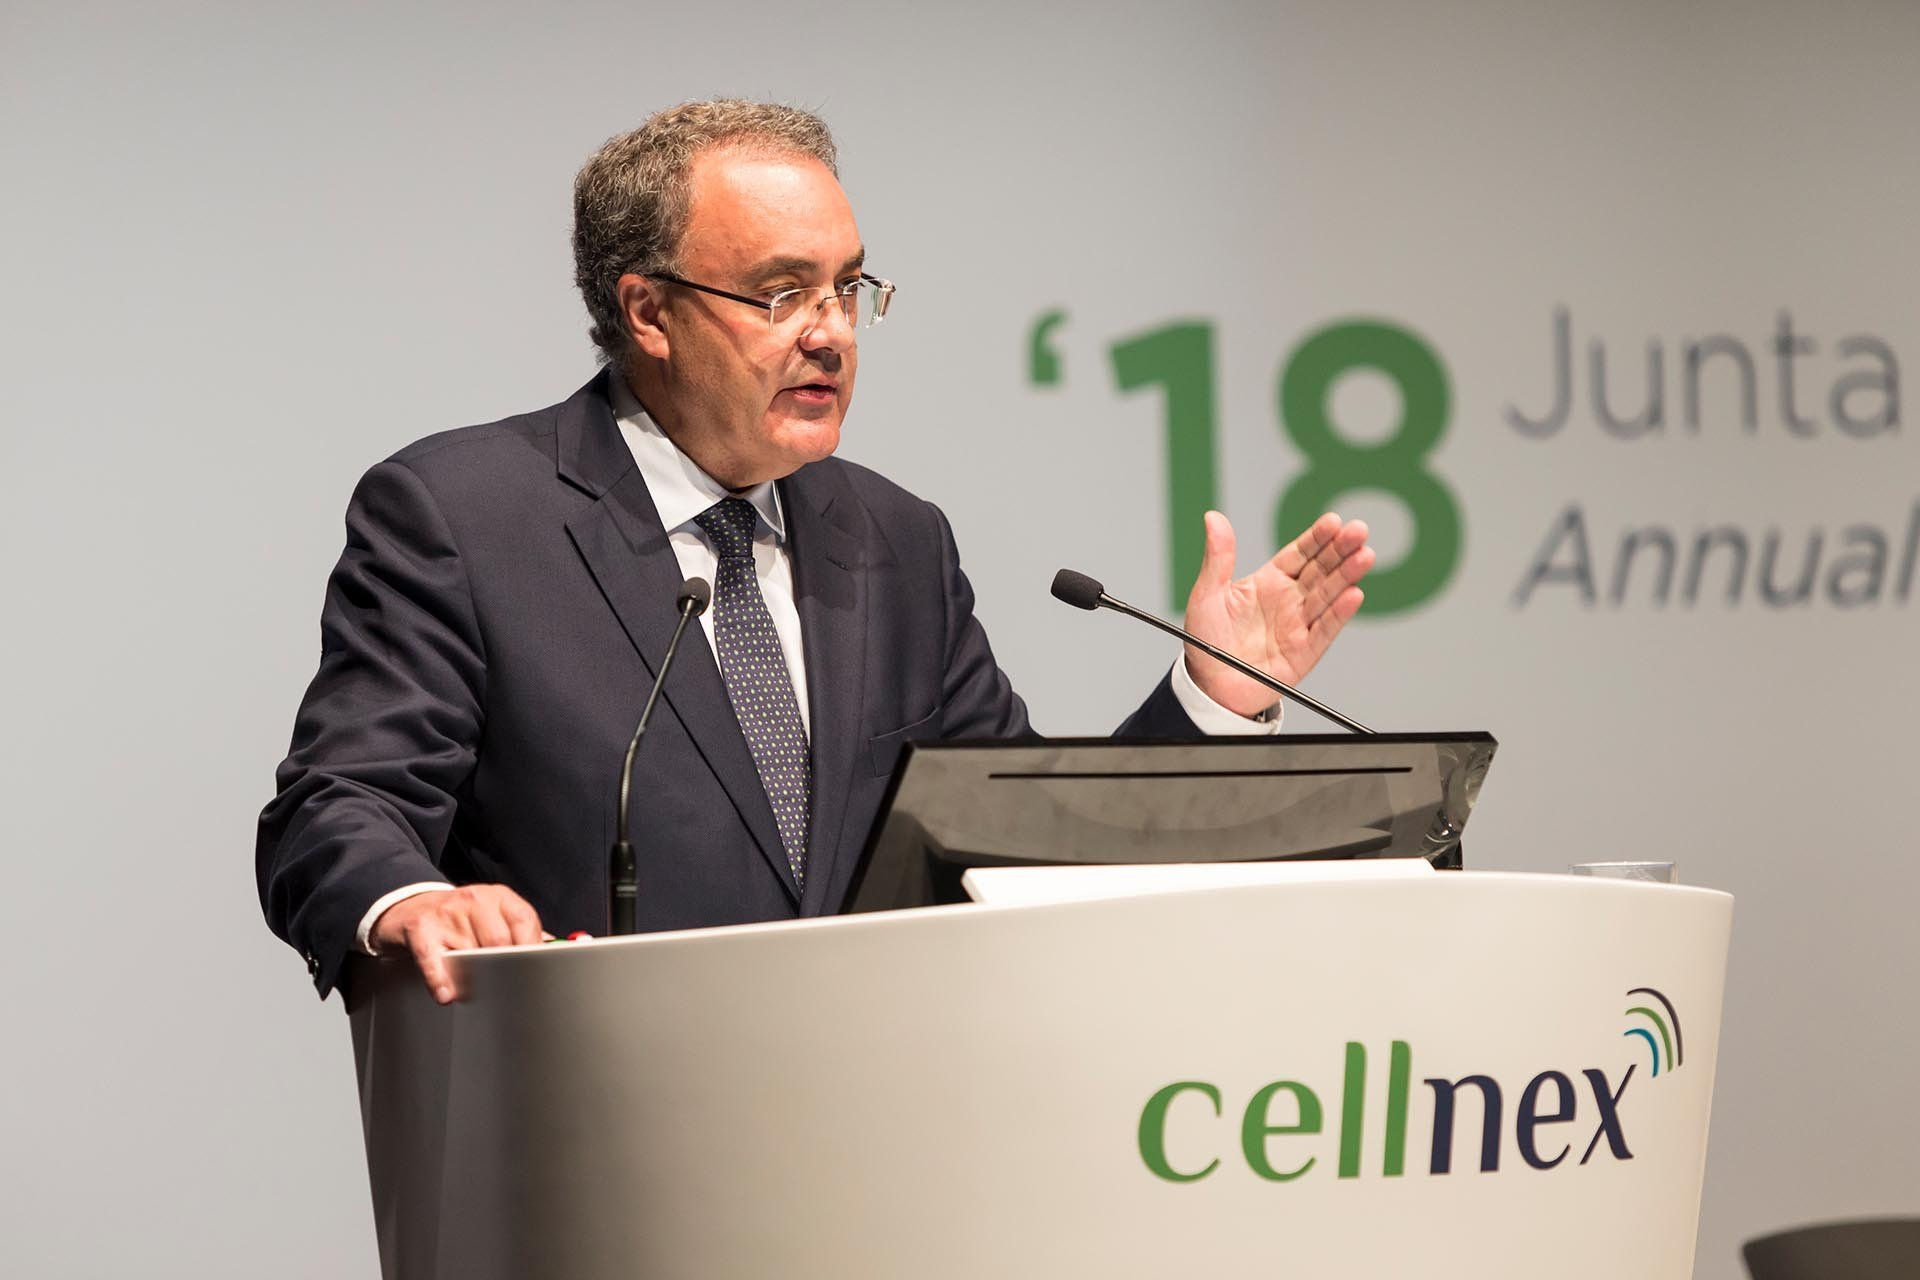 Tobías Martínez, CEO de Cellnex